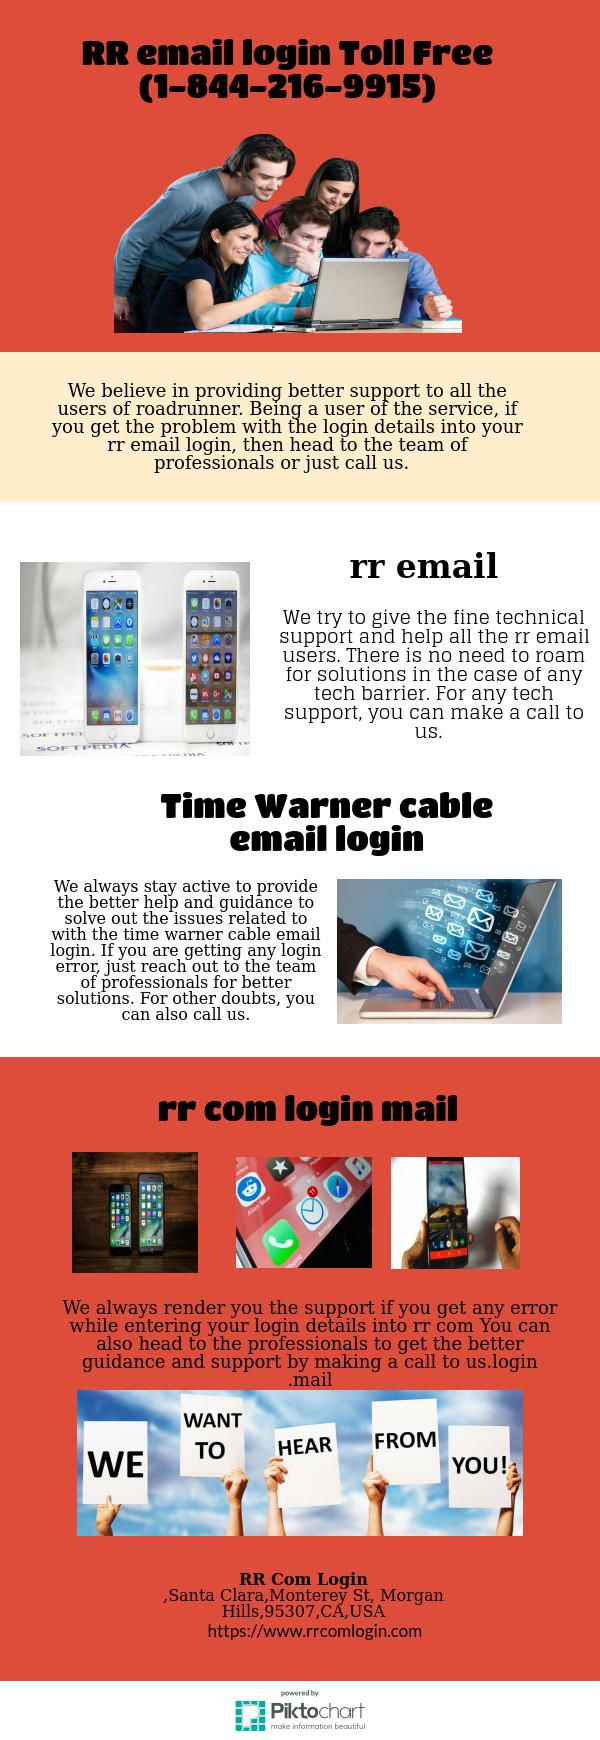 Rr Email Login Toll Free (1-844-216-9915)